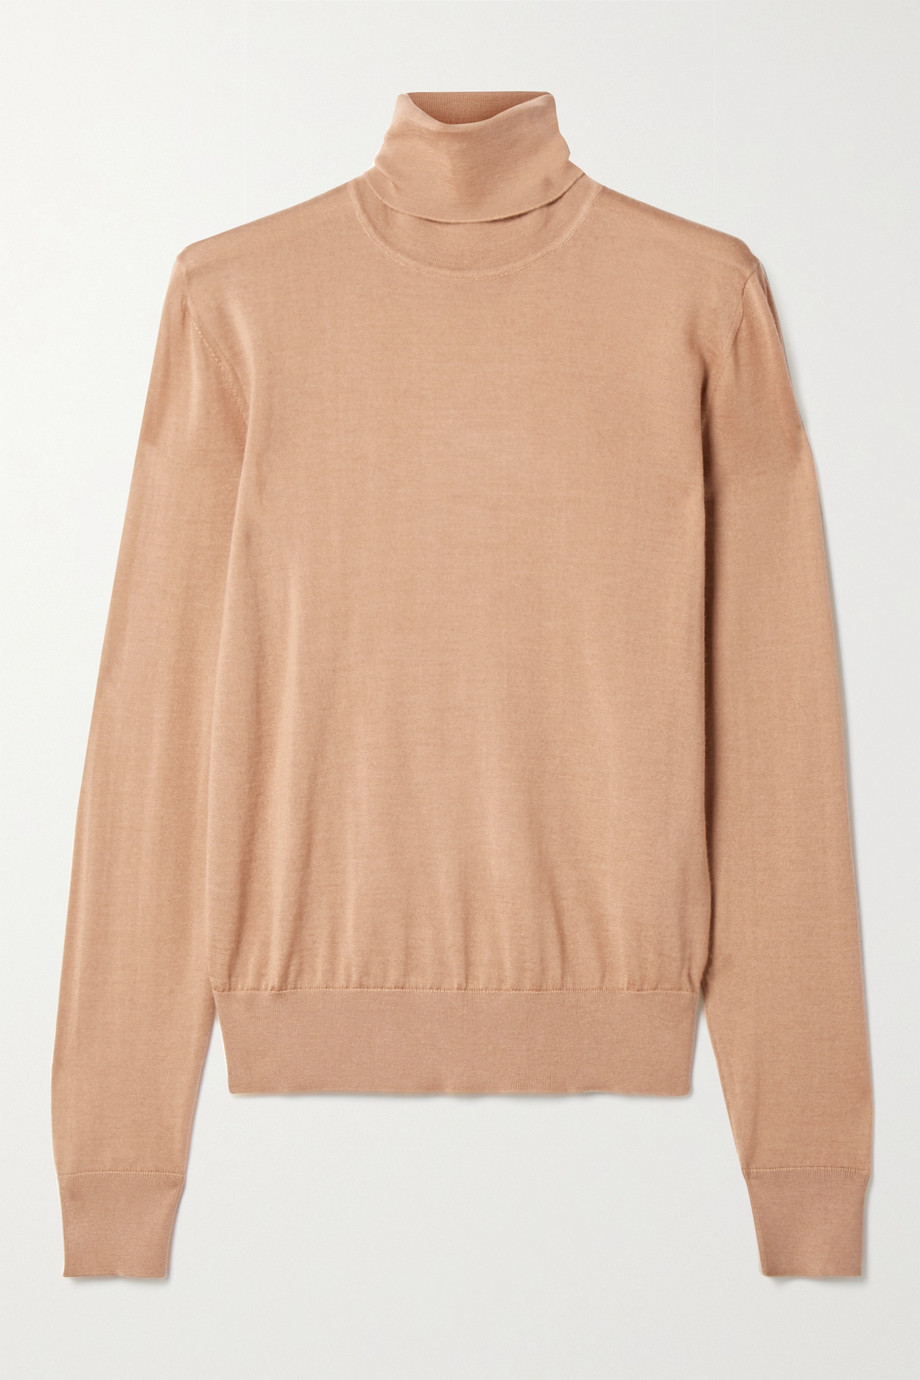 Dolce & Gabbana Cashmere and silk-blend turtleneck sweater